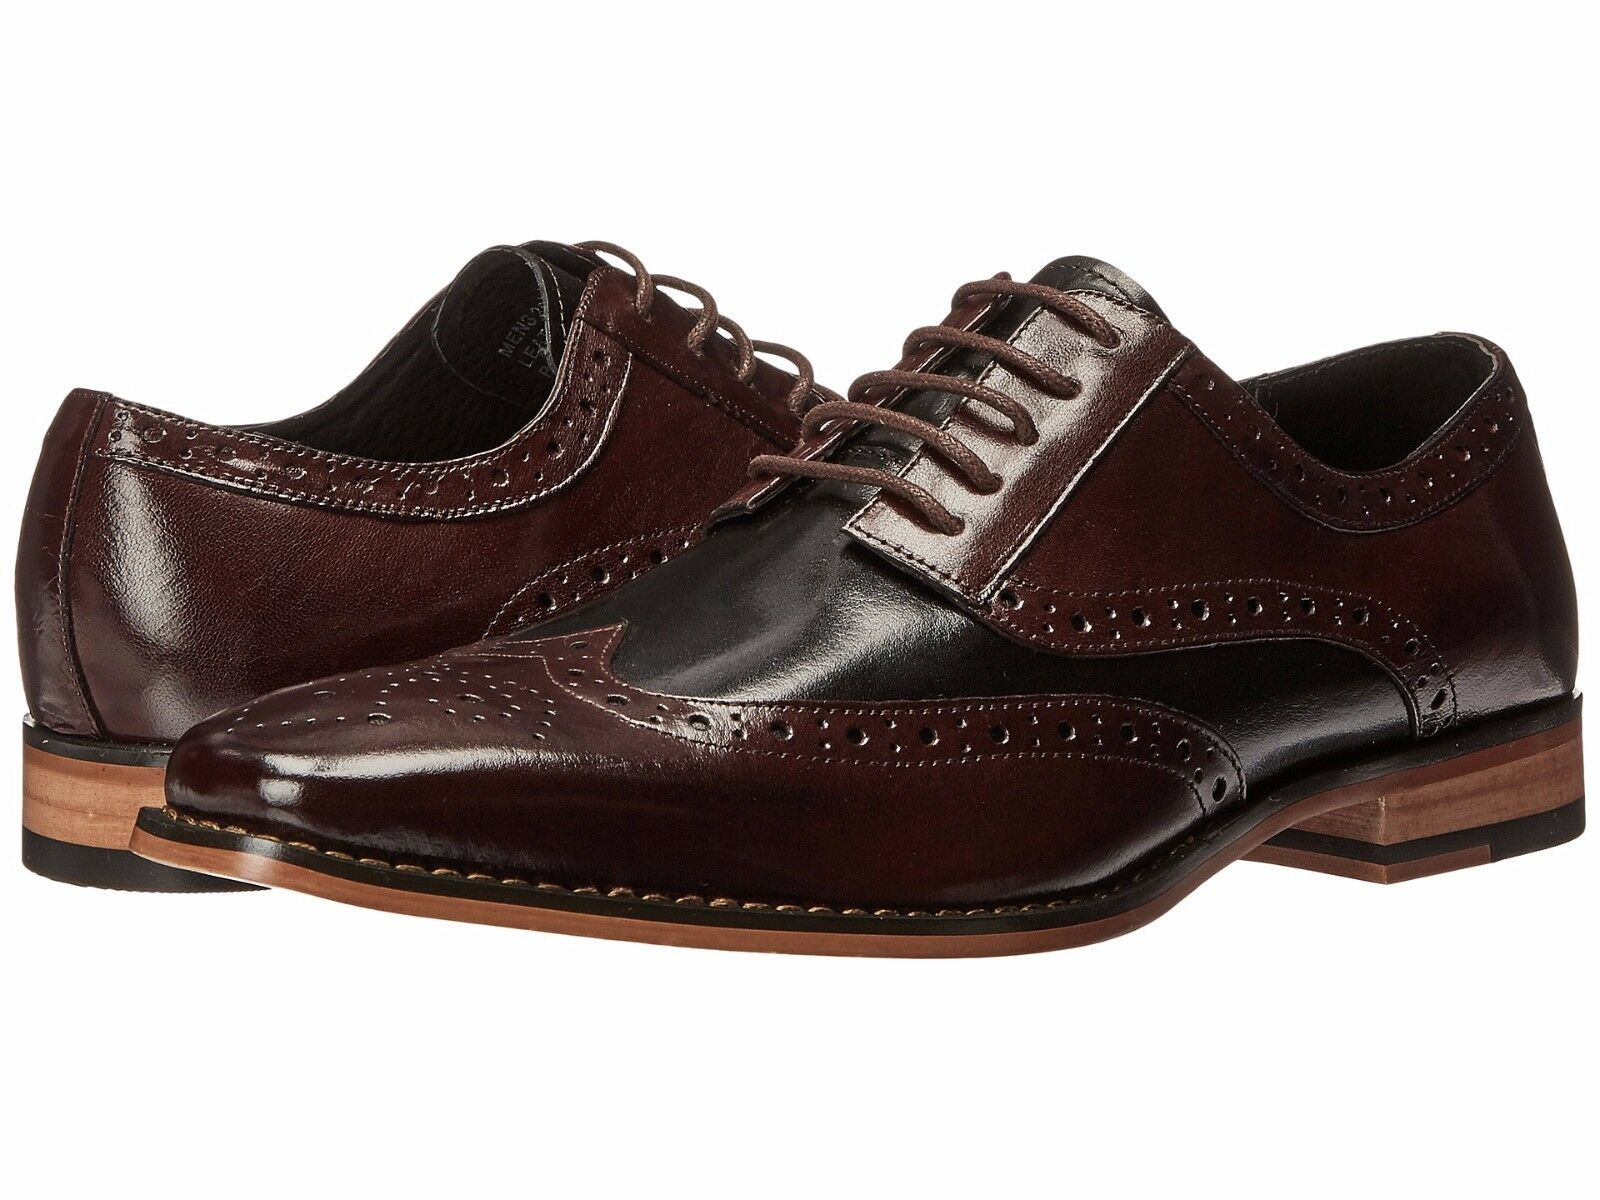 Men's shoes Stacy Adams Tinsley Leather Wingtip Oxford 25092-641 Burgundy Multi